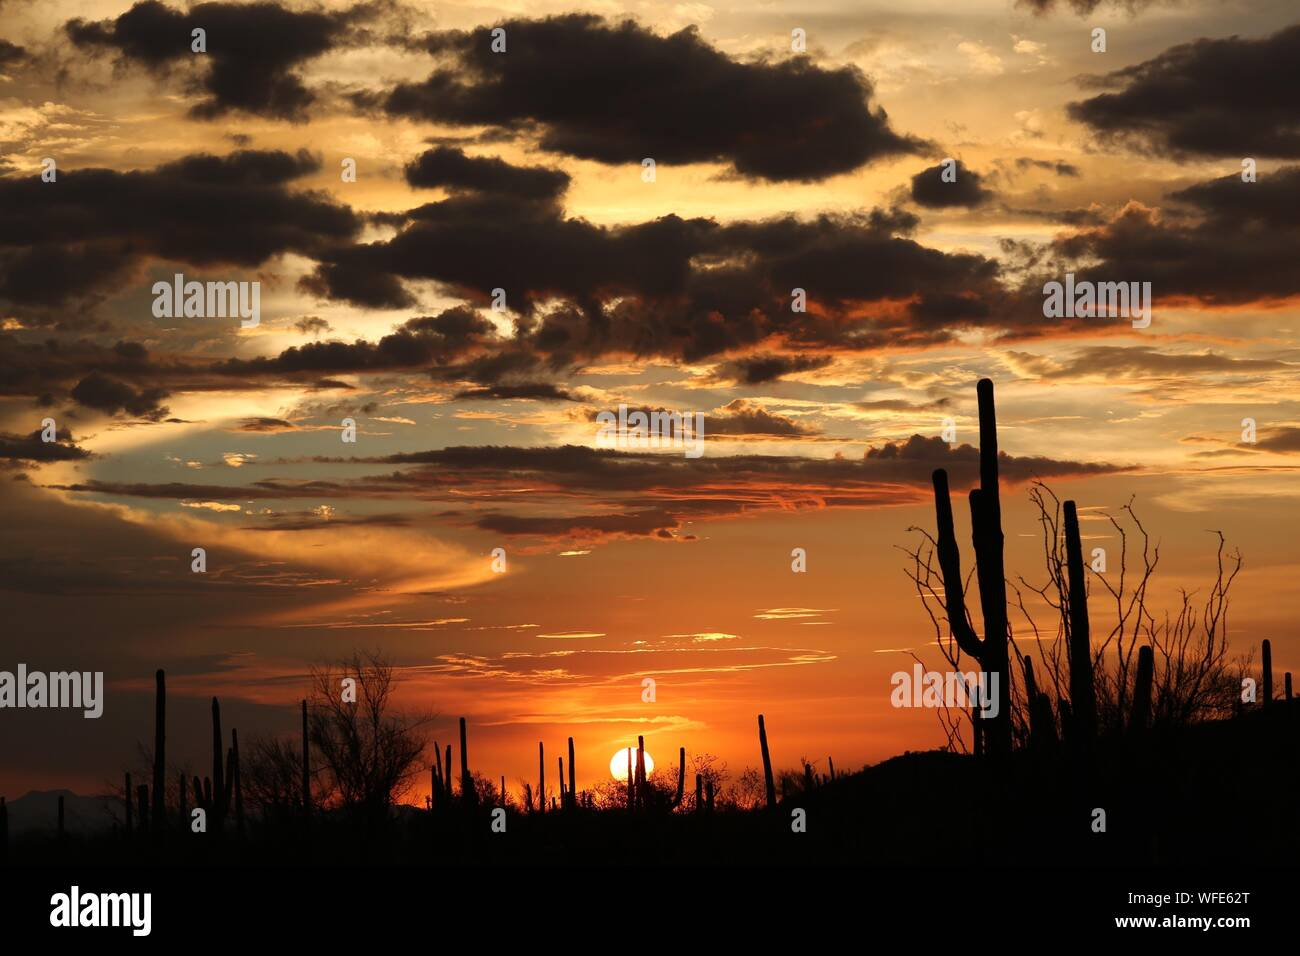 Silhouette Trees Against Sky During Sunset Stock Photo